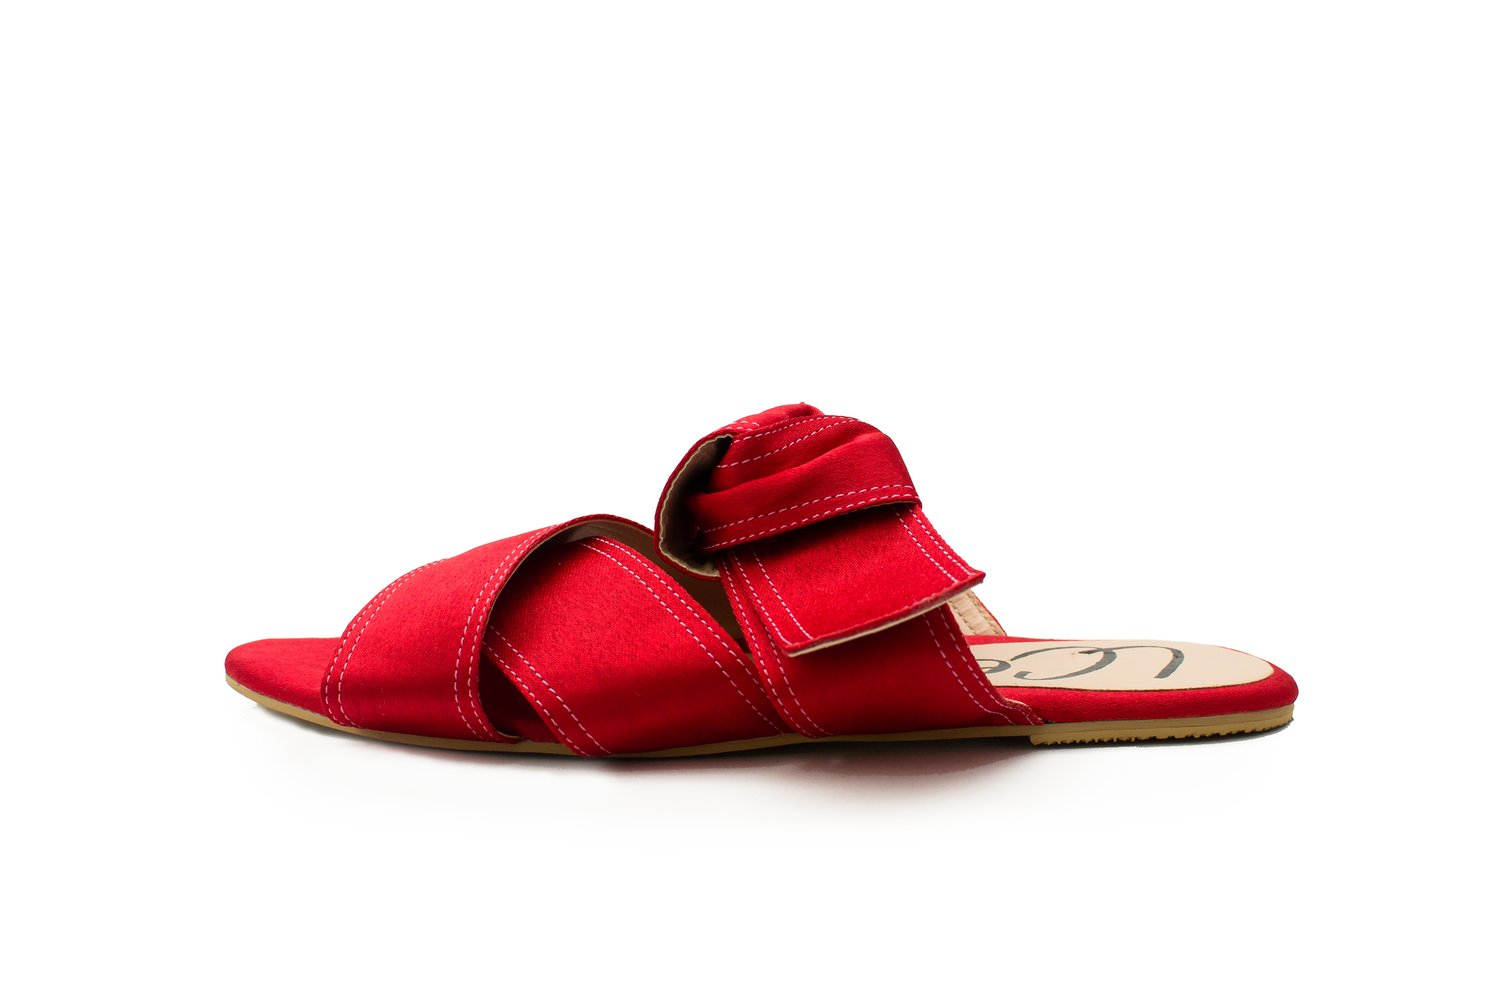 OLIVETTO RED FLAT SANDALS - LOOP NATURAL